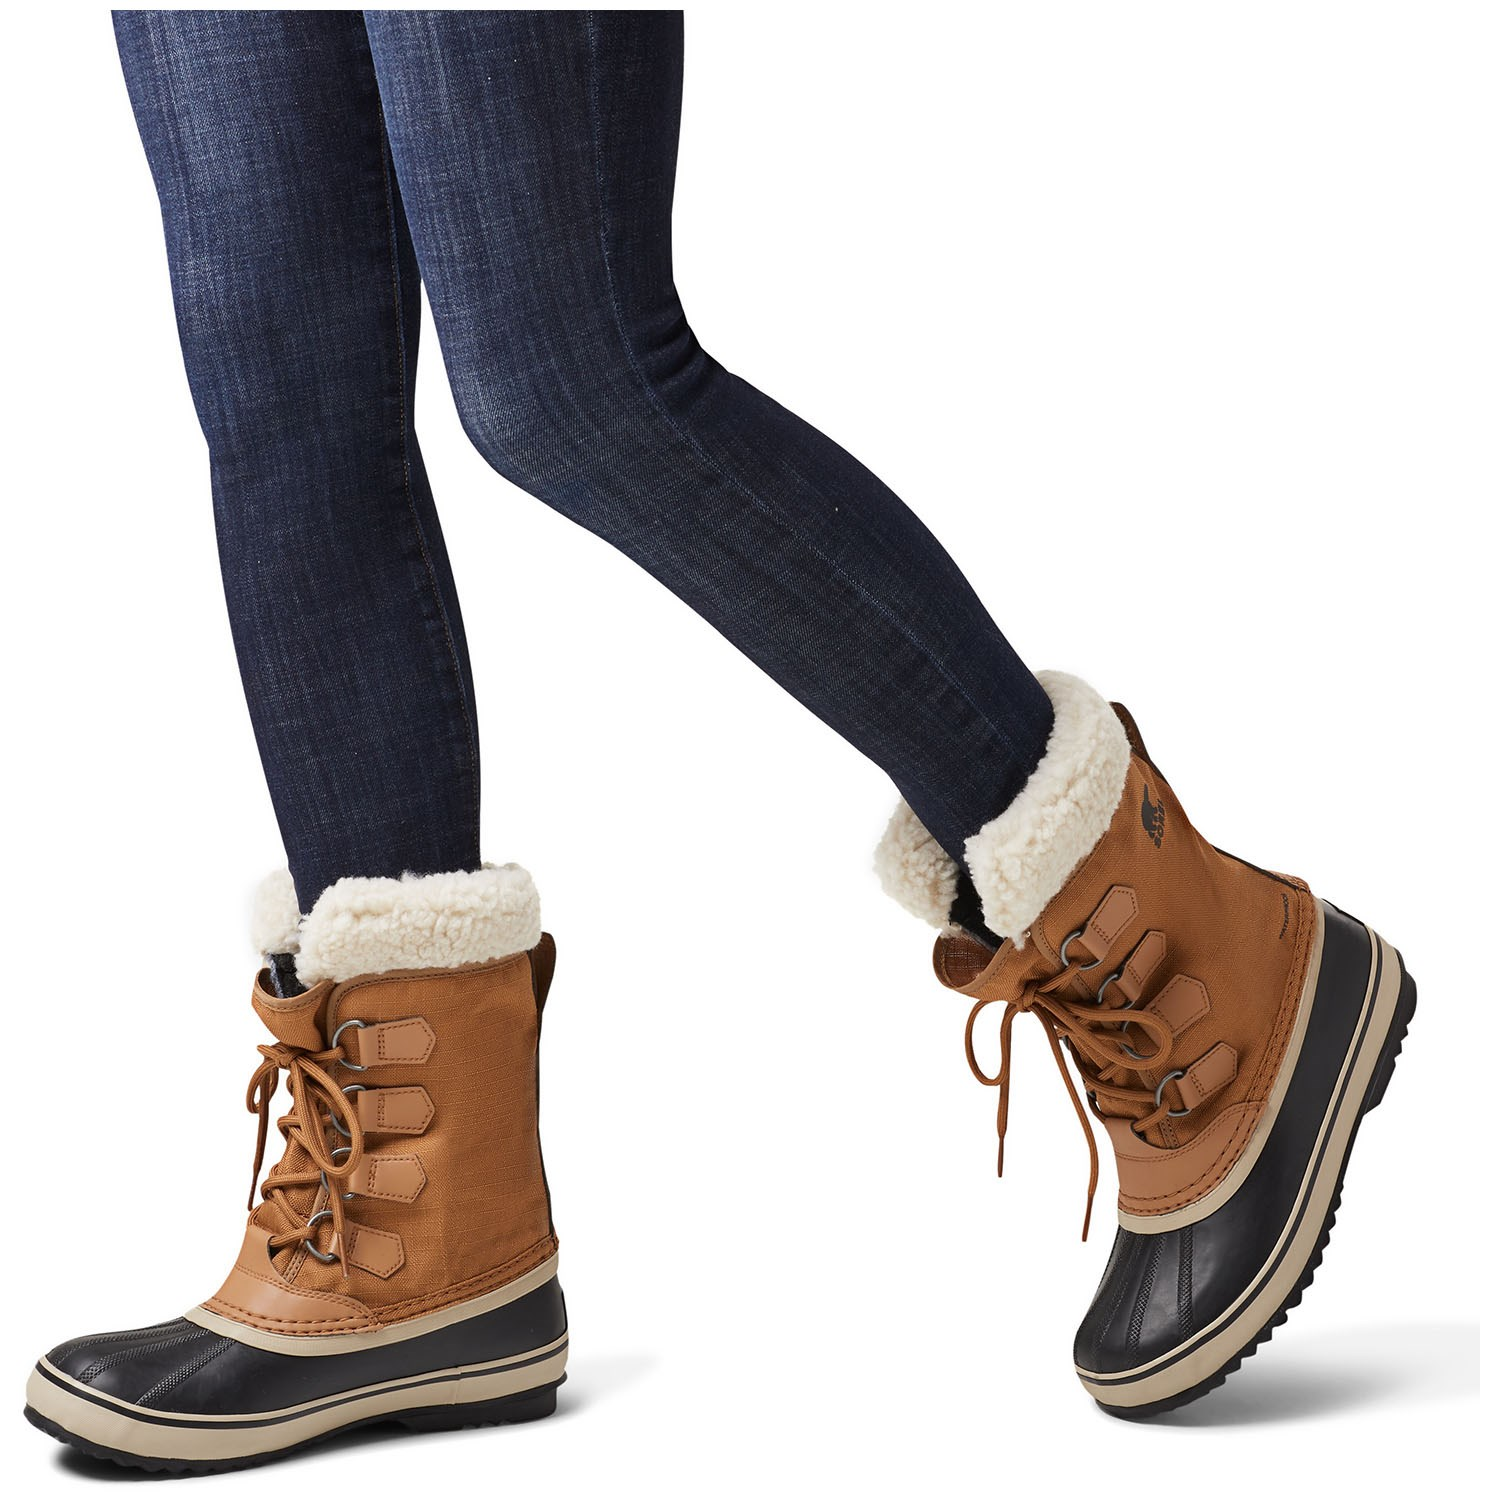 Sorel Winter Carnival Boots - Women's | evo